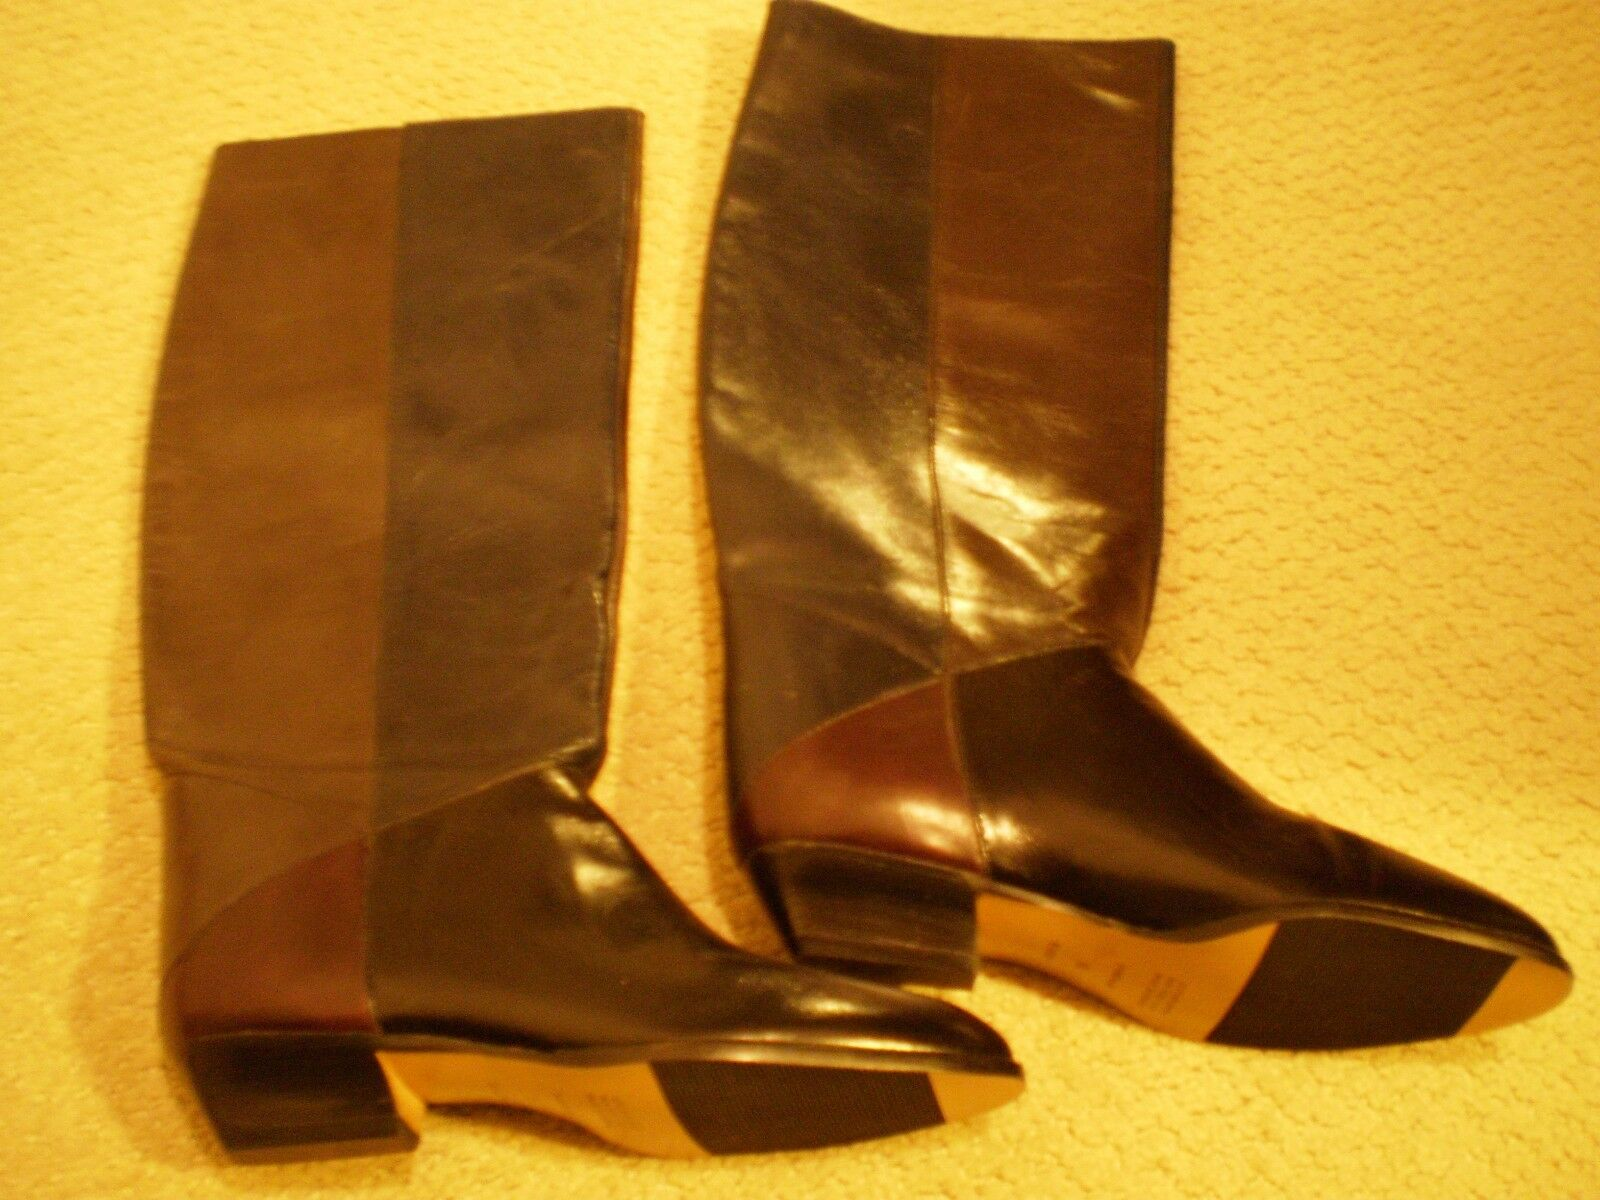 NEW Brazil made, Leather, color Block, Knee High Boots, US Size 6.5 M, 1  Heel